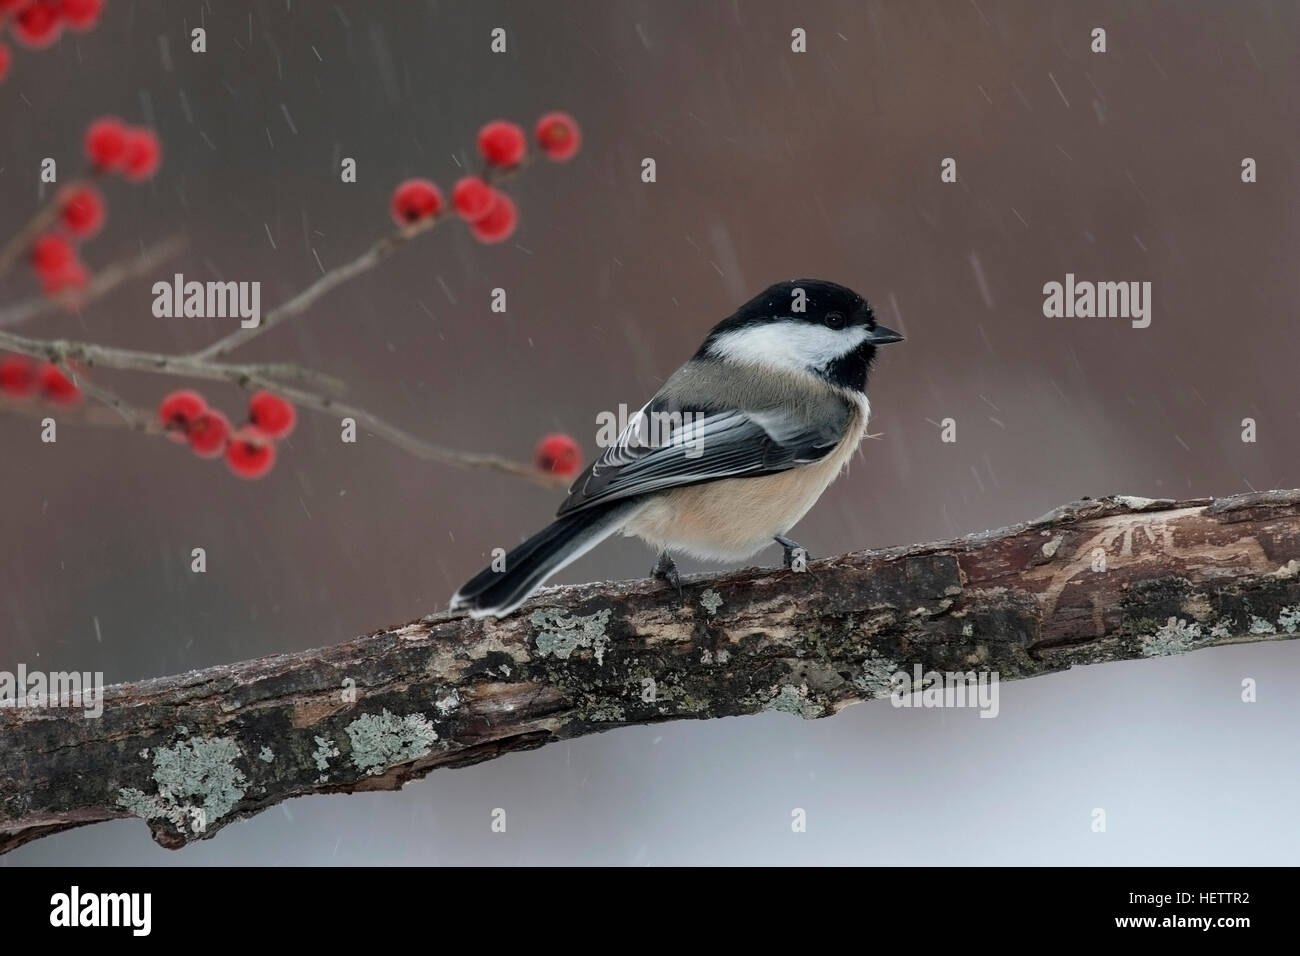 Chickadee perches on branch near winterberry on snowy day - Stock Image